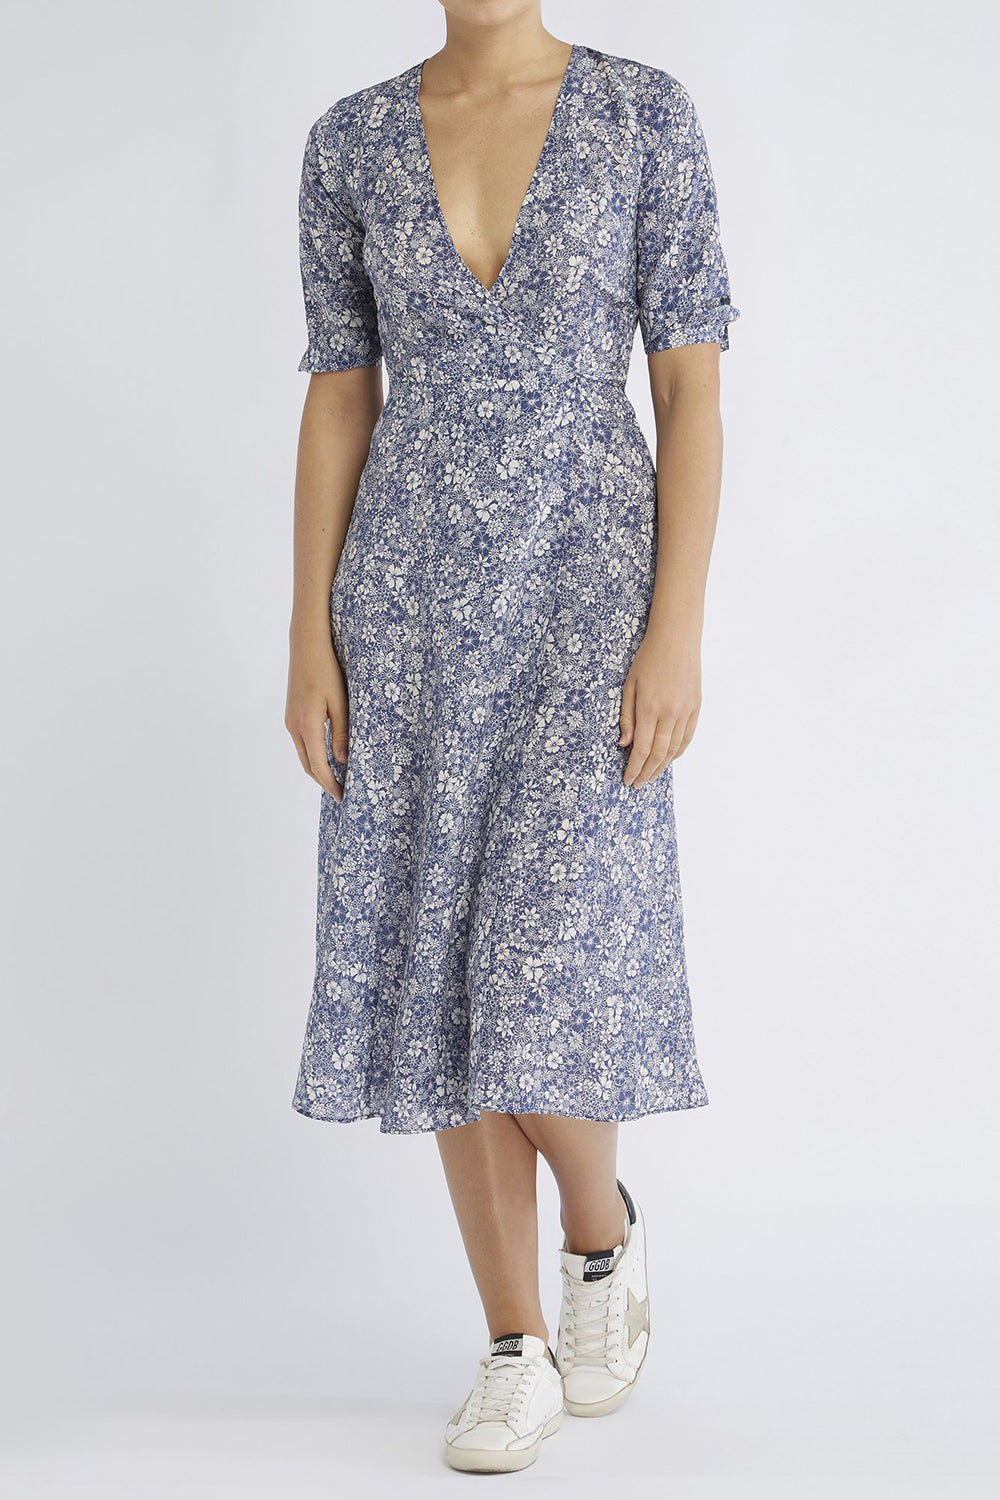 RAE26 - Annika Dress (Linear Floral) - Australian Fashion and Accessories Boutique - Faid Store